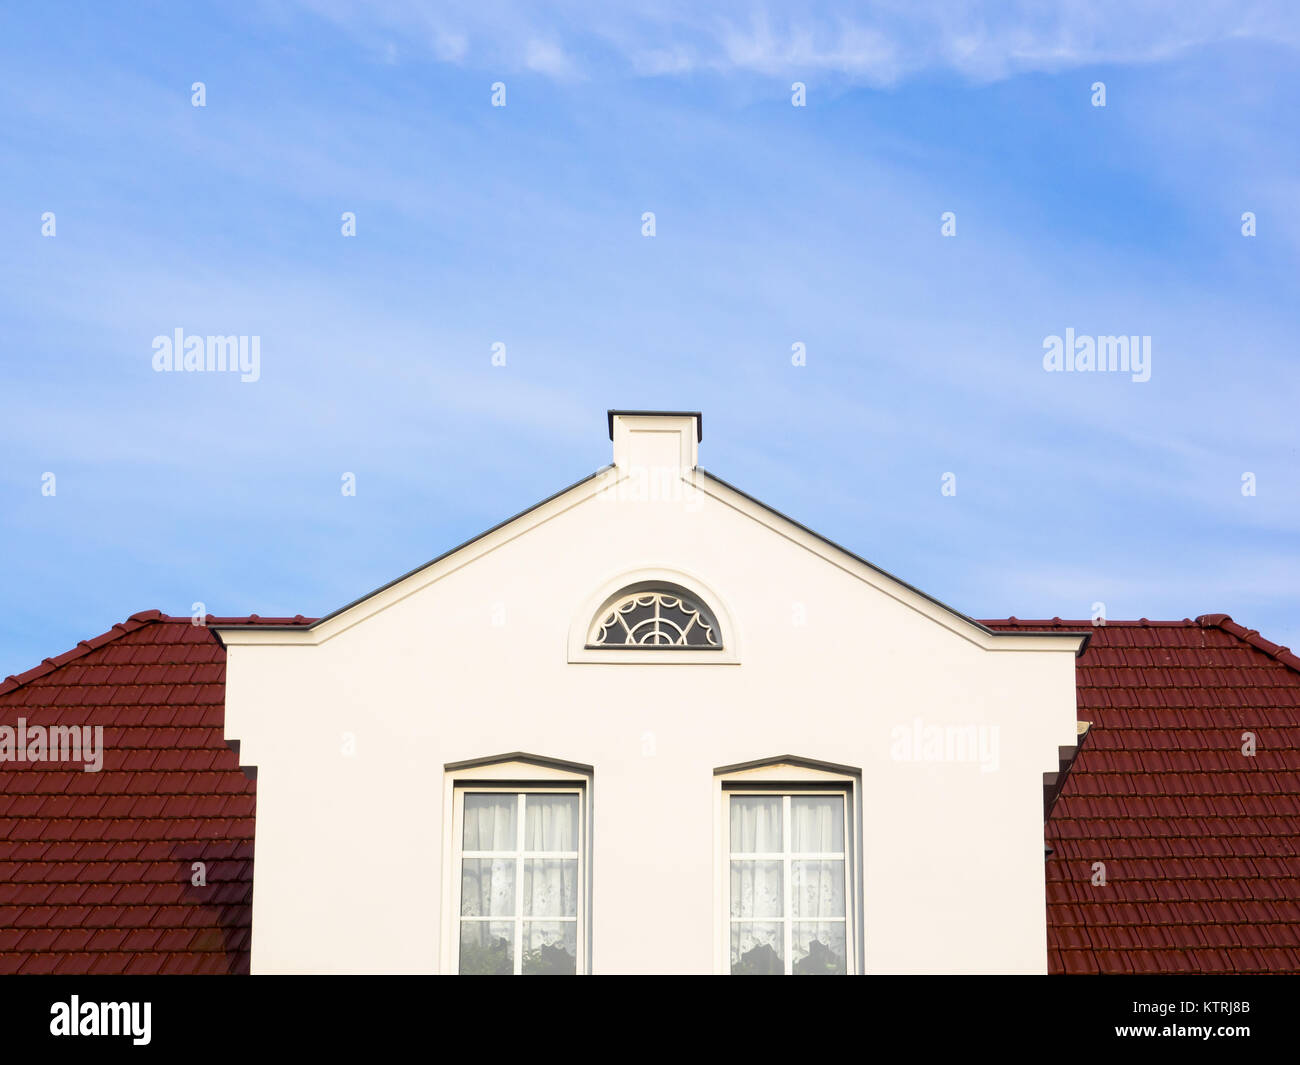 White house with three-level gable and copy space - Stock Image